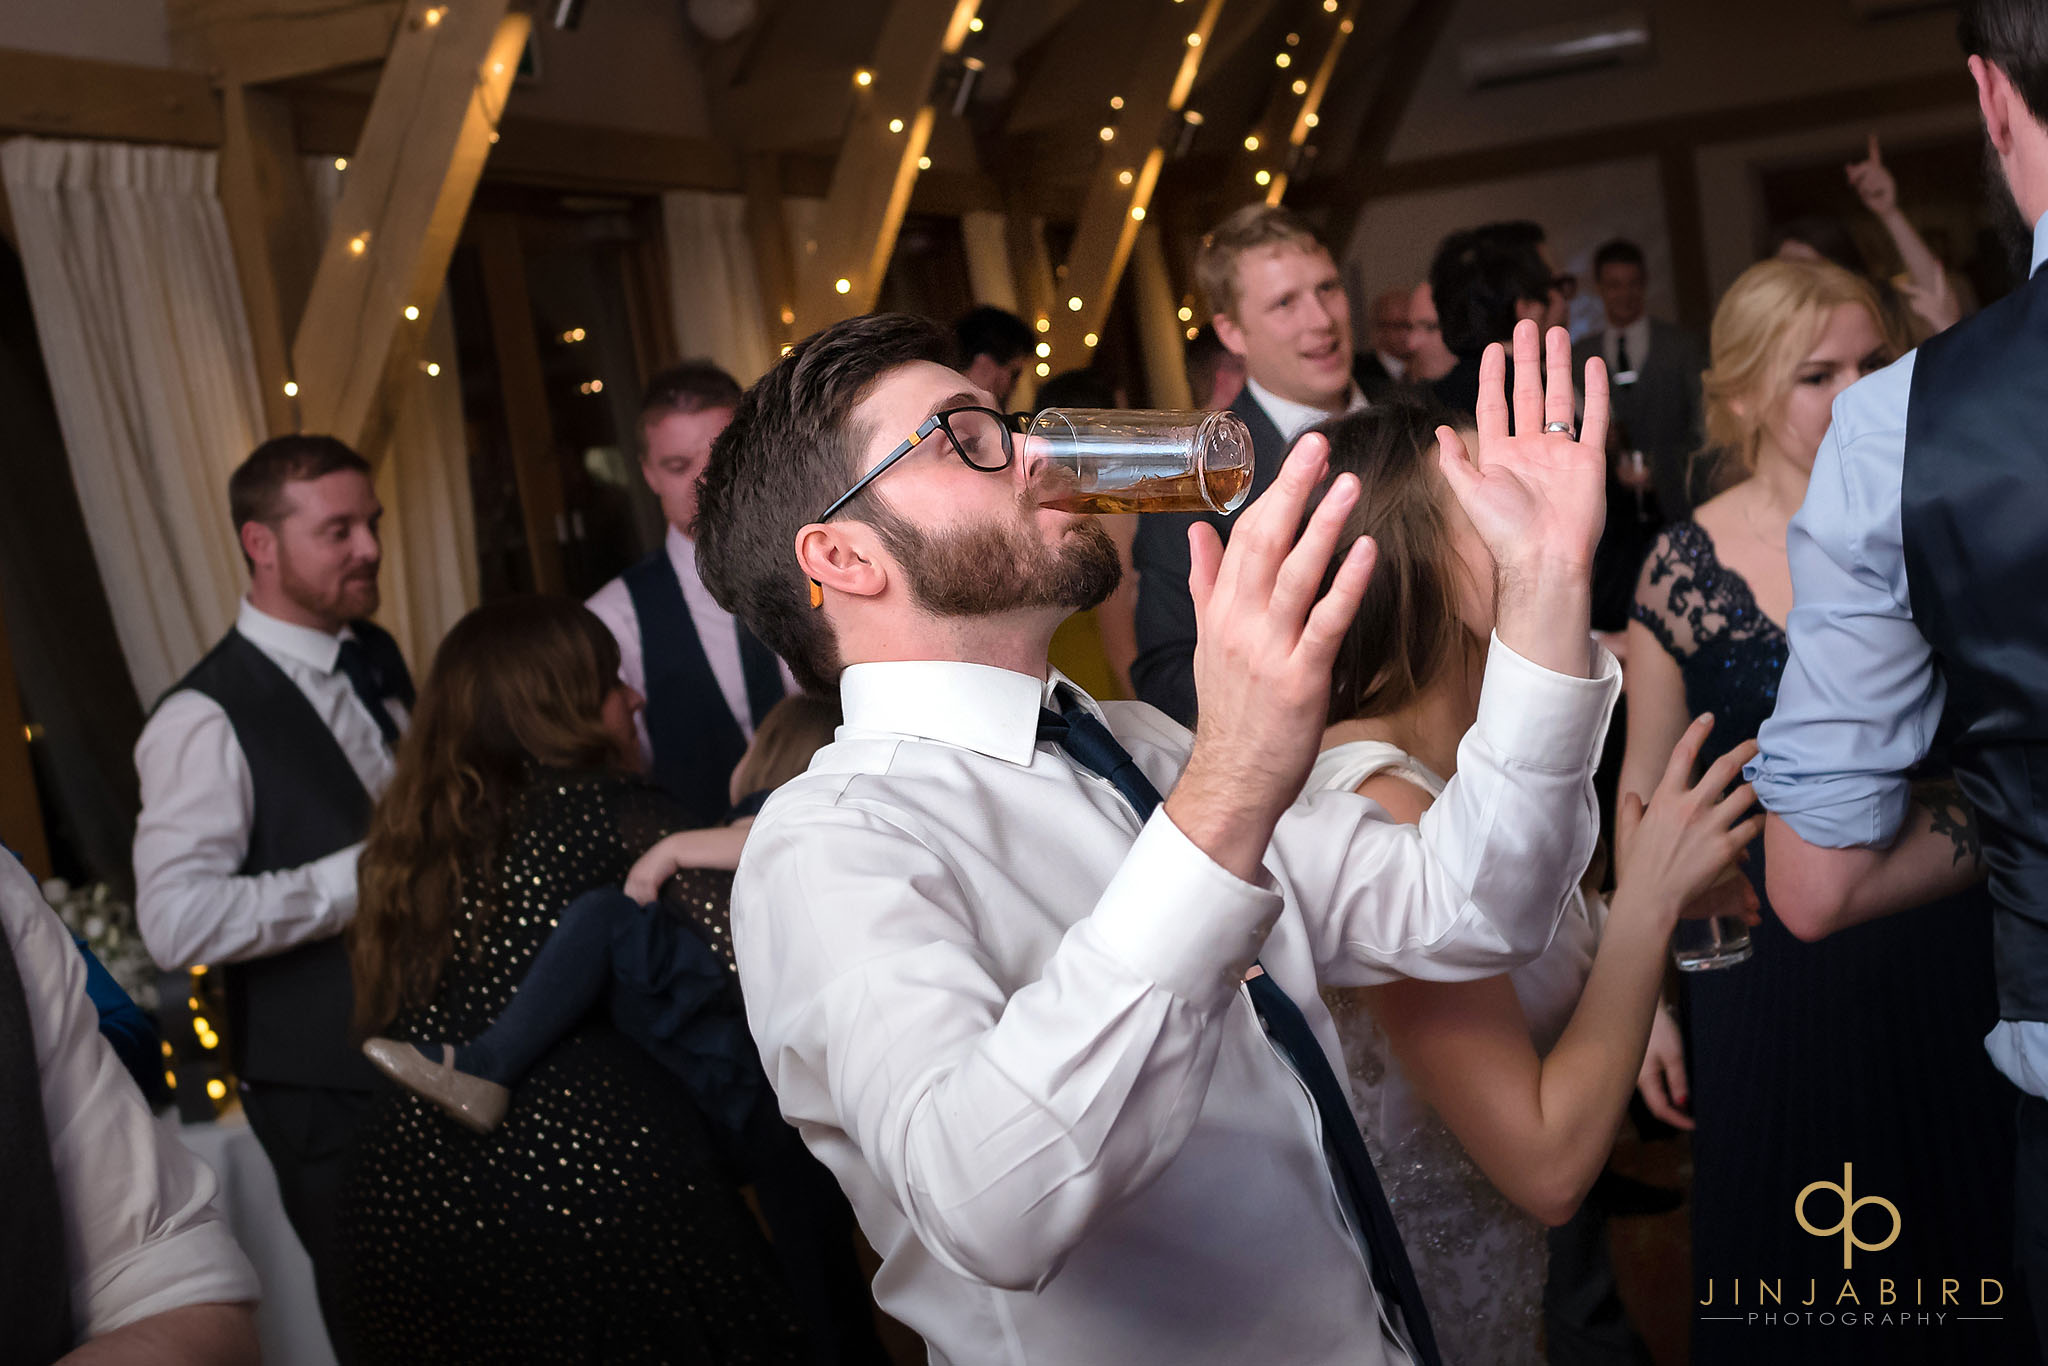 groom dancing with glass in mouth